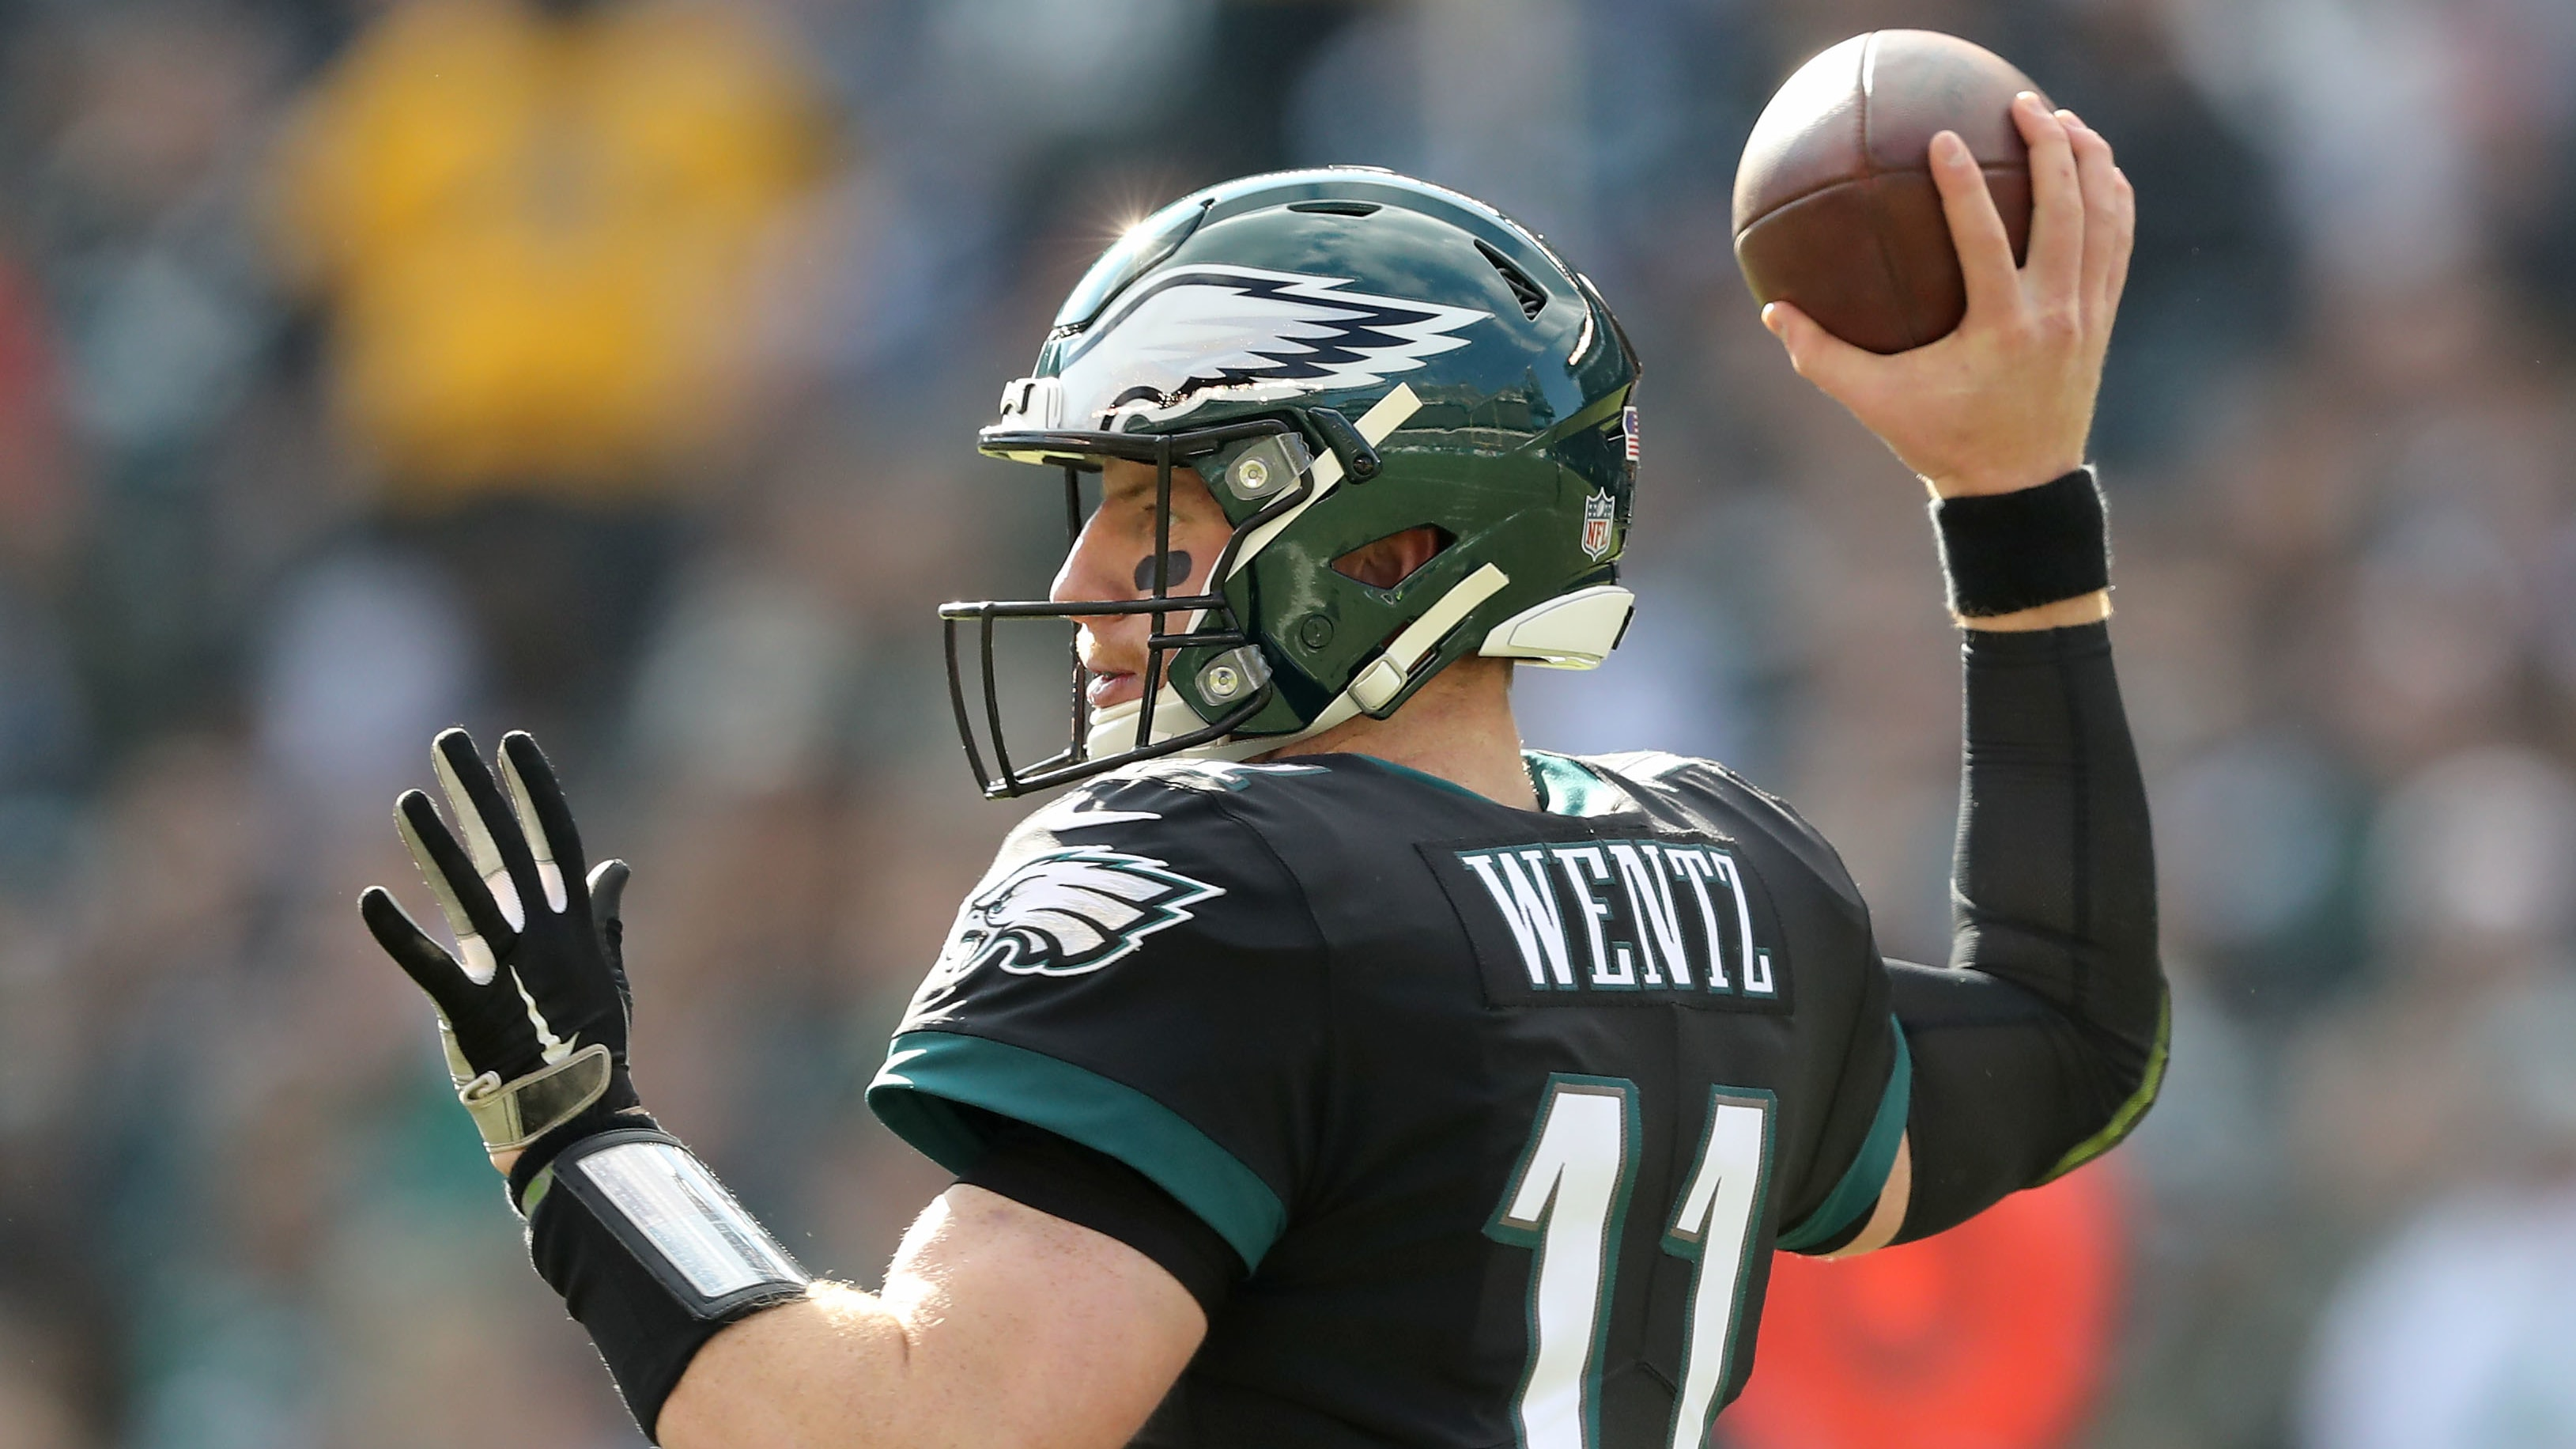 PHILADELPHIA, PENNSYLVANIA - NOVEMBER 25:  Carson Wentz #11 of the Philadelphia Eagles passes in the first half against the New York Giants at Lincoln Financial Field on November 25, 2018 in Philadelphia, Pennsylvania. (Photo by Elsa/Getty Images)